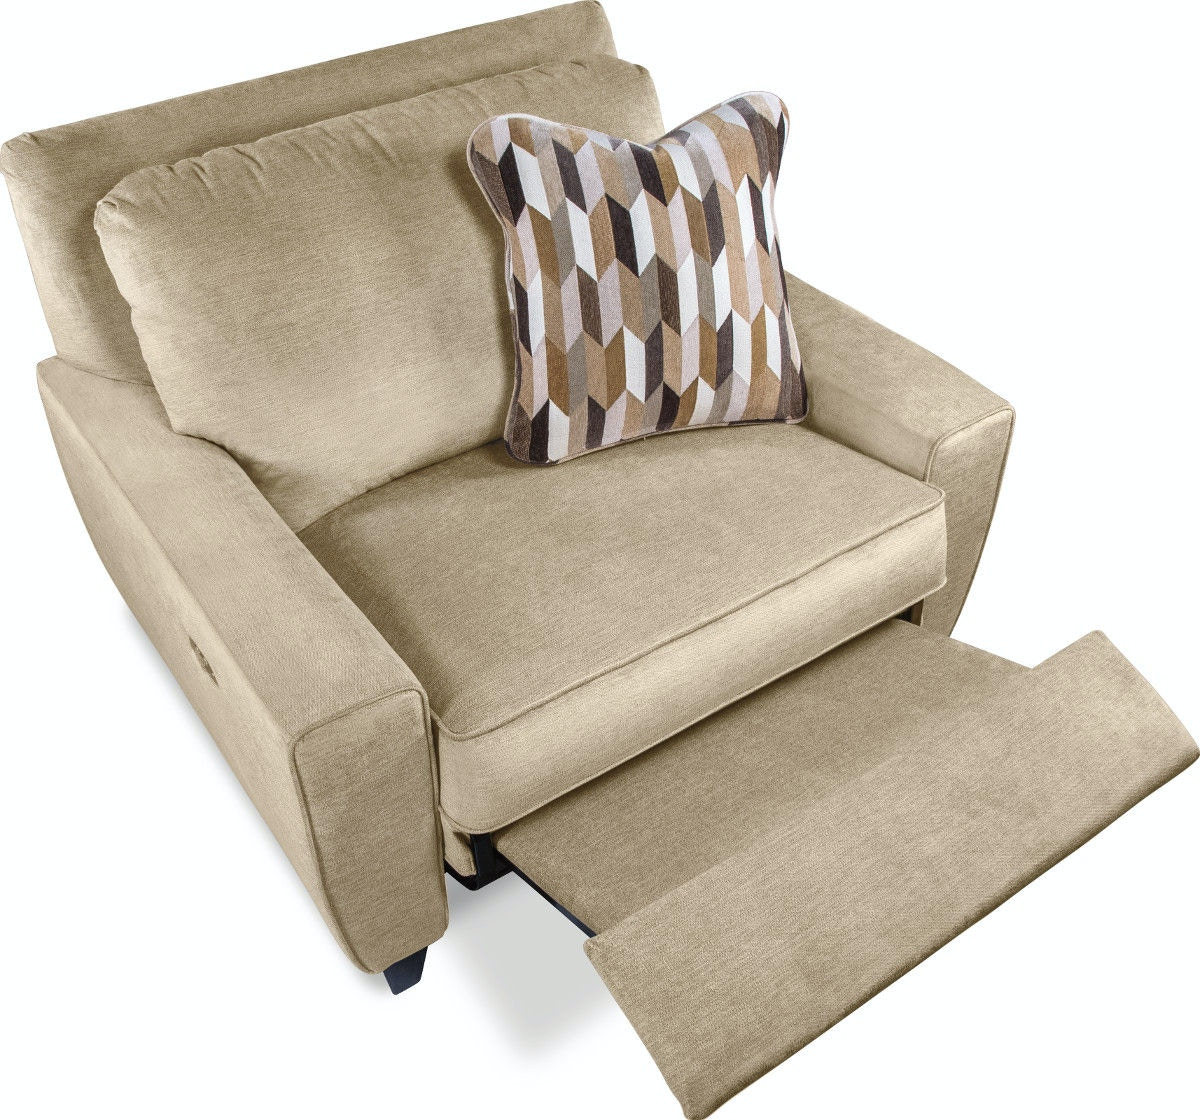 chair and a half recliner ottoman sale lazboy duo reclining chair and half 95p897 living room